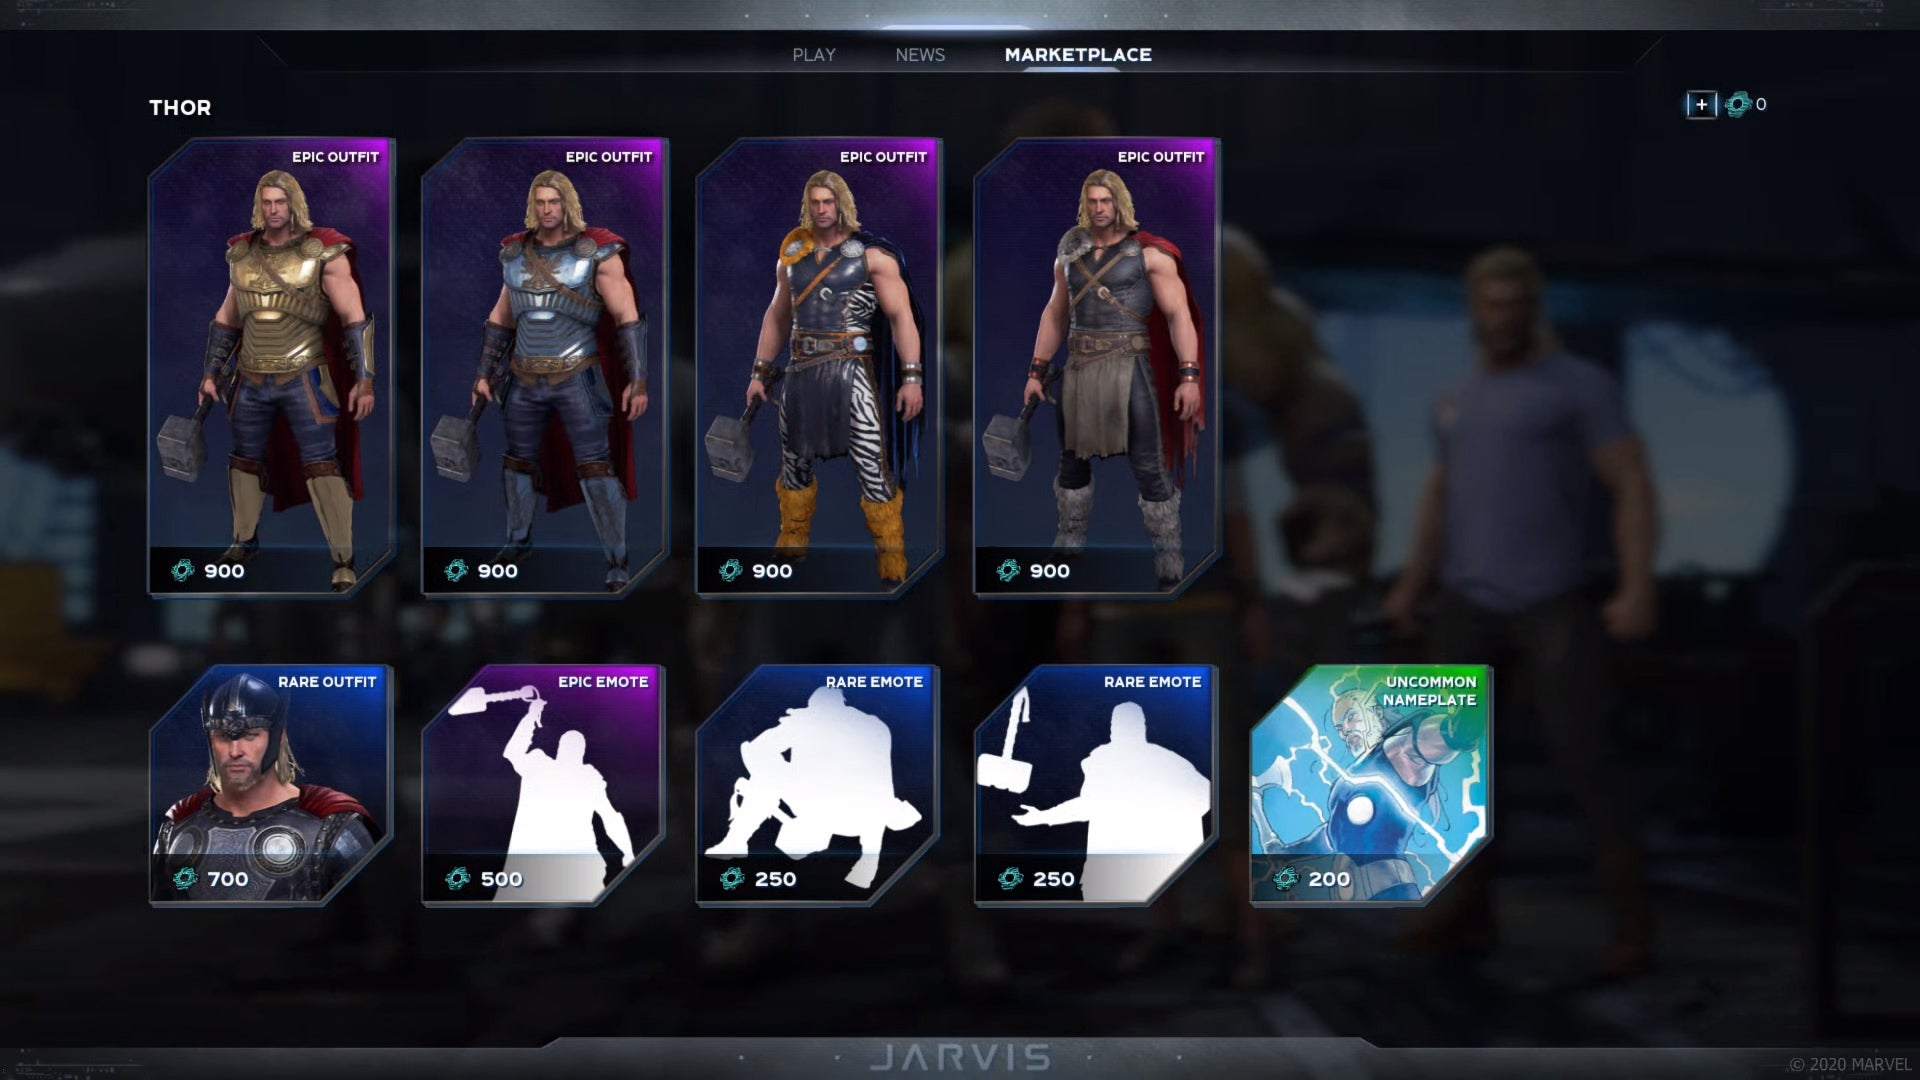 Thor marketplace containing Outfits, Emotes & a Nameplate